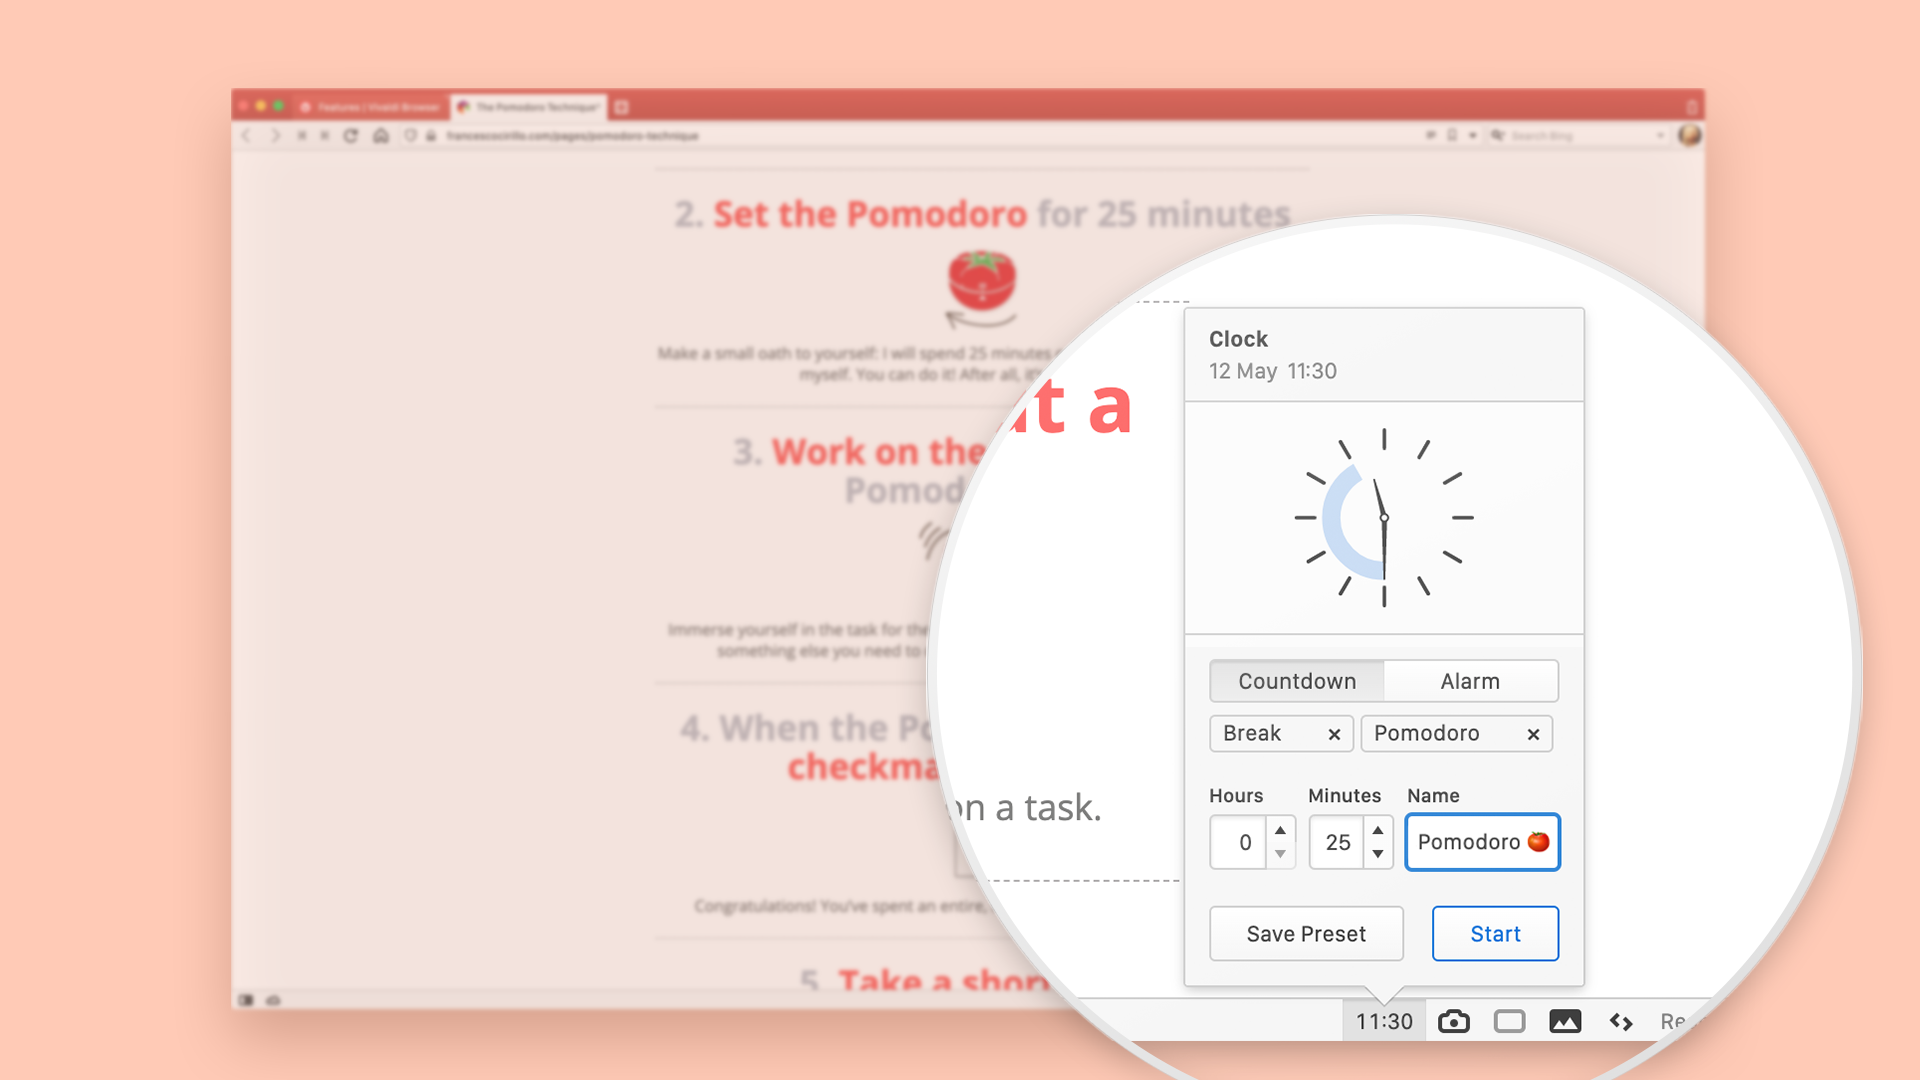 The Pomodoro timer menu in Vivaldi browser.